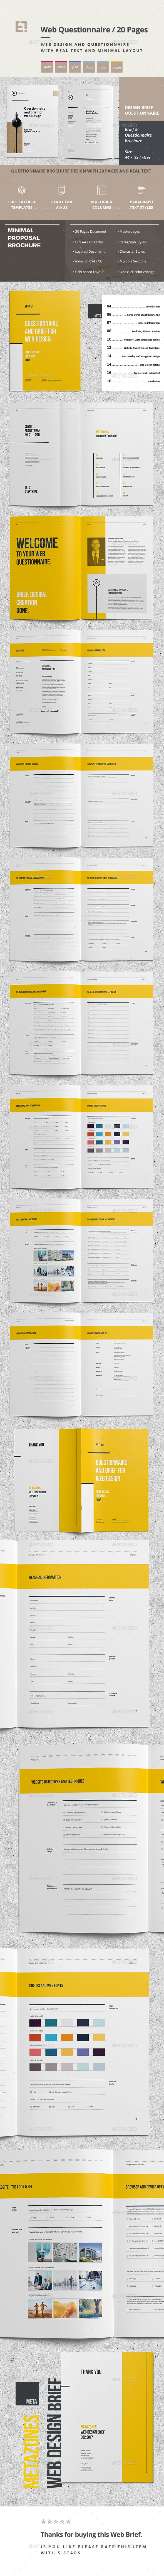 Questionnaire Web Design — InDesign INDD #word #questionairre • Download ➝ https://graphicriver.net/item/questionnaire-web-design/19826027?ref=pxcr